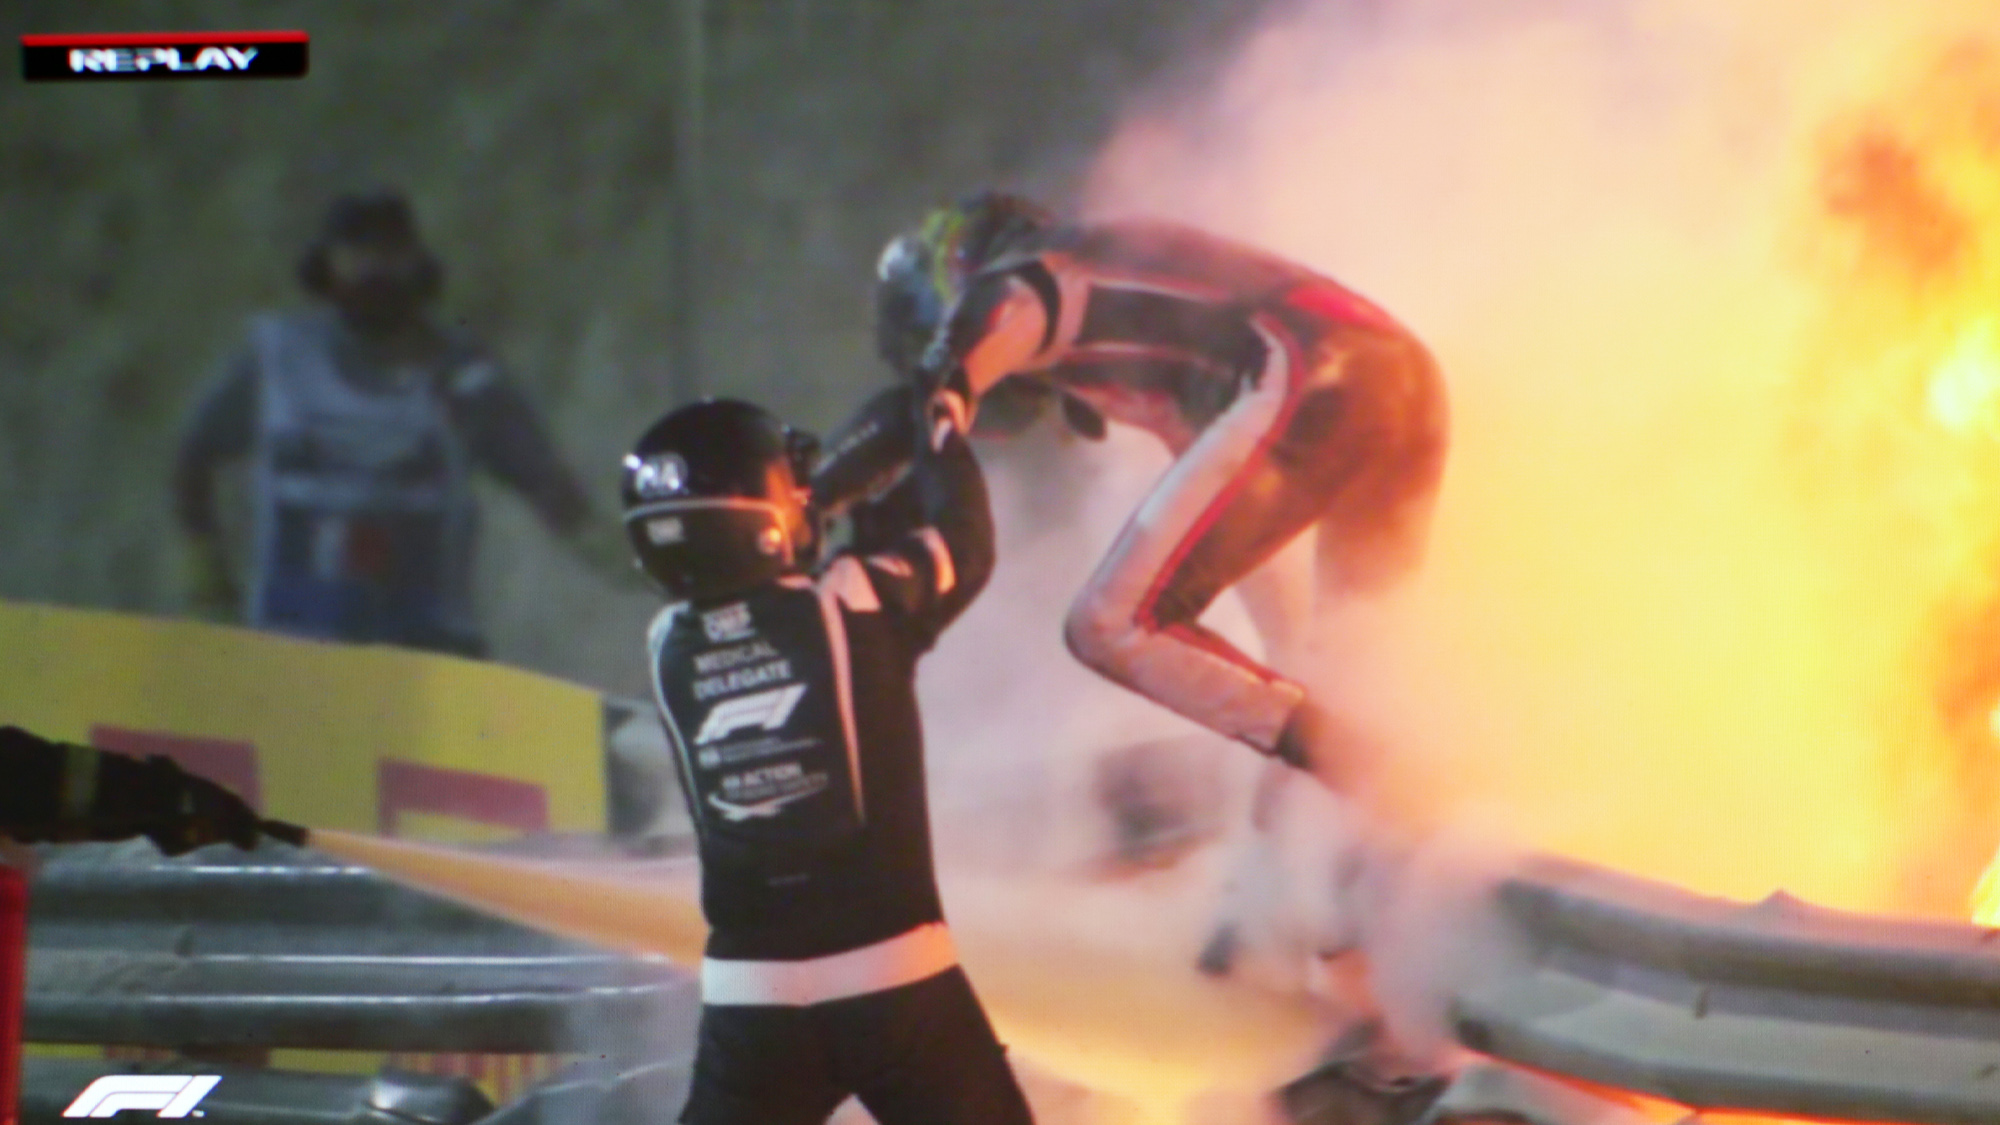 Romain Grosjean escapes the fire of his Haas wreckages at the 2020 F1 Bahrain Grand Prix